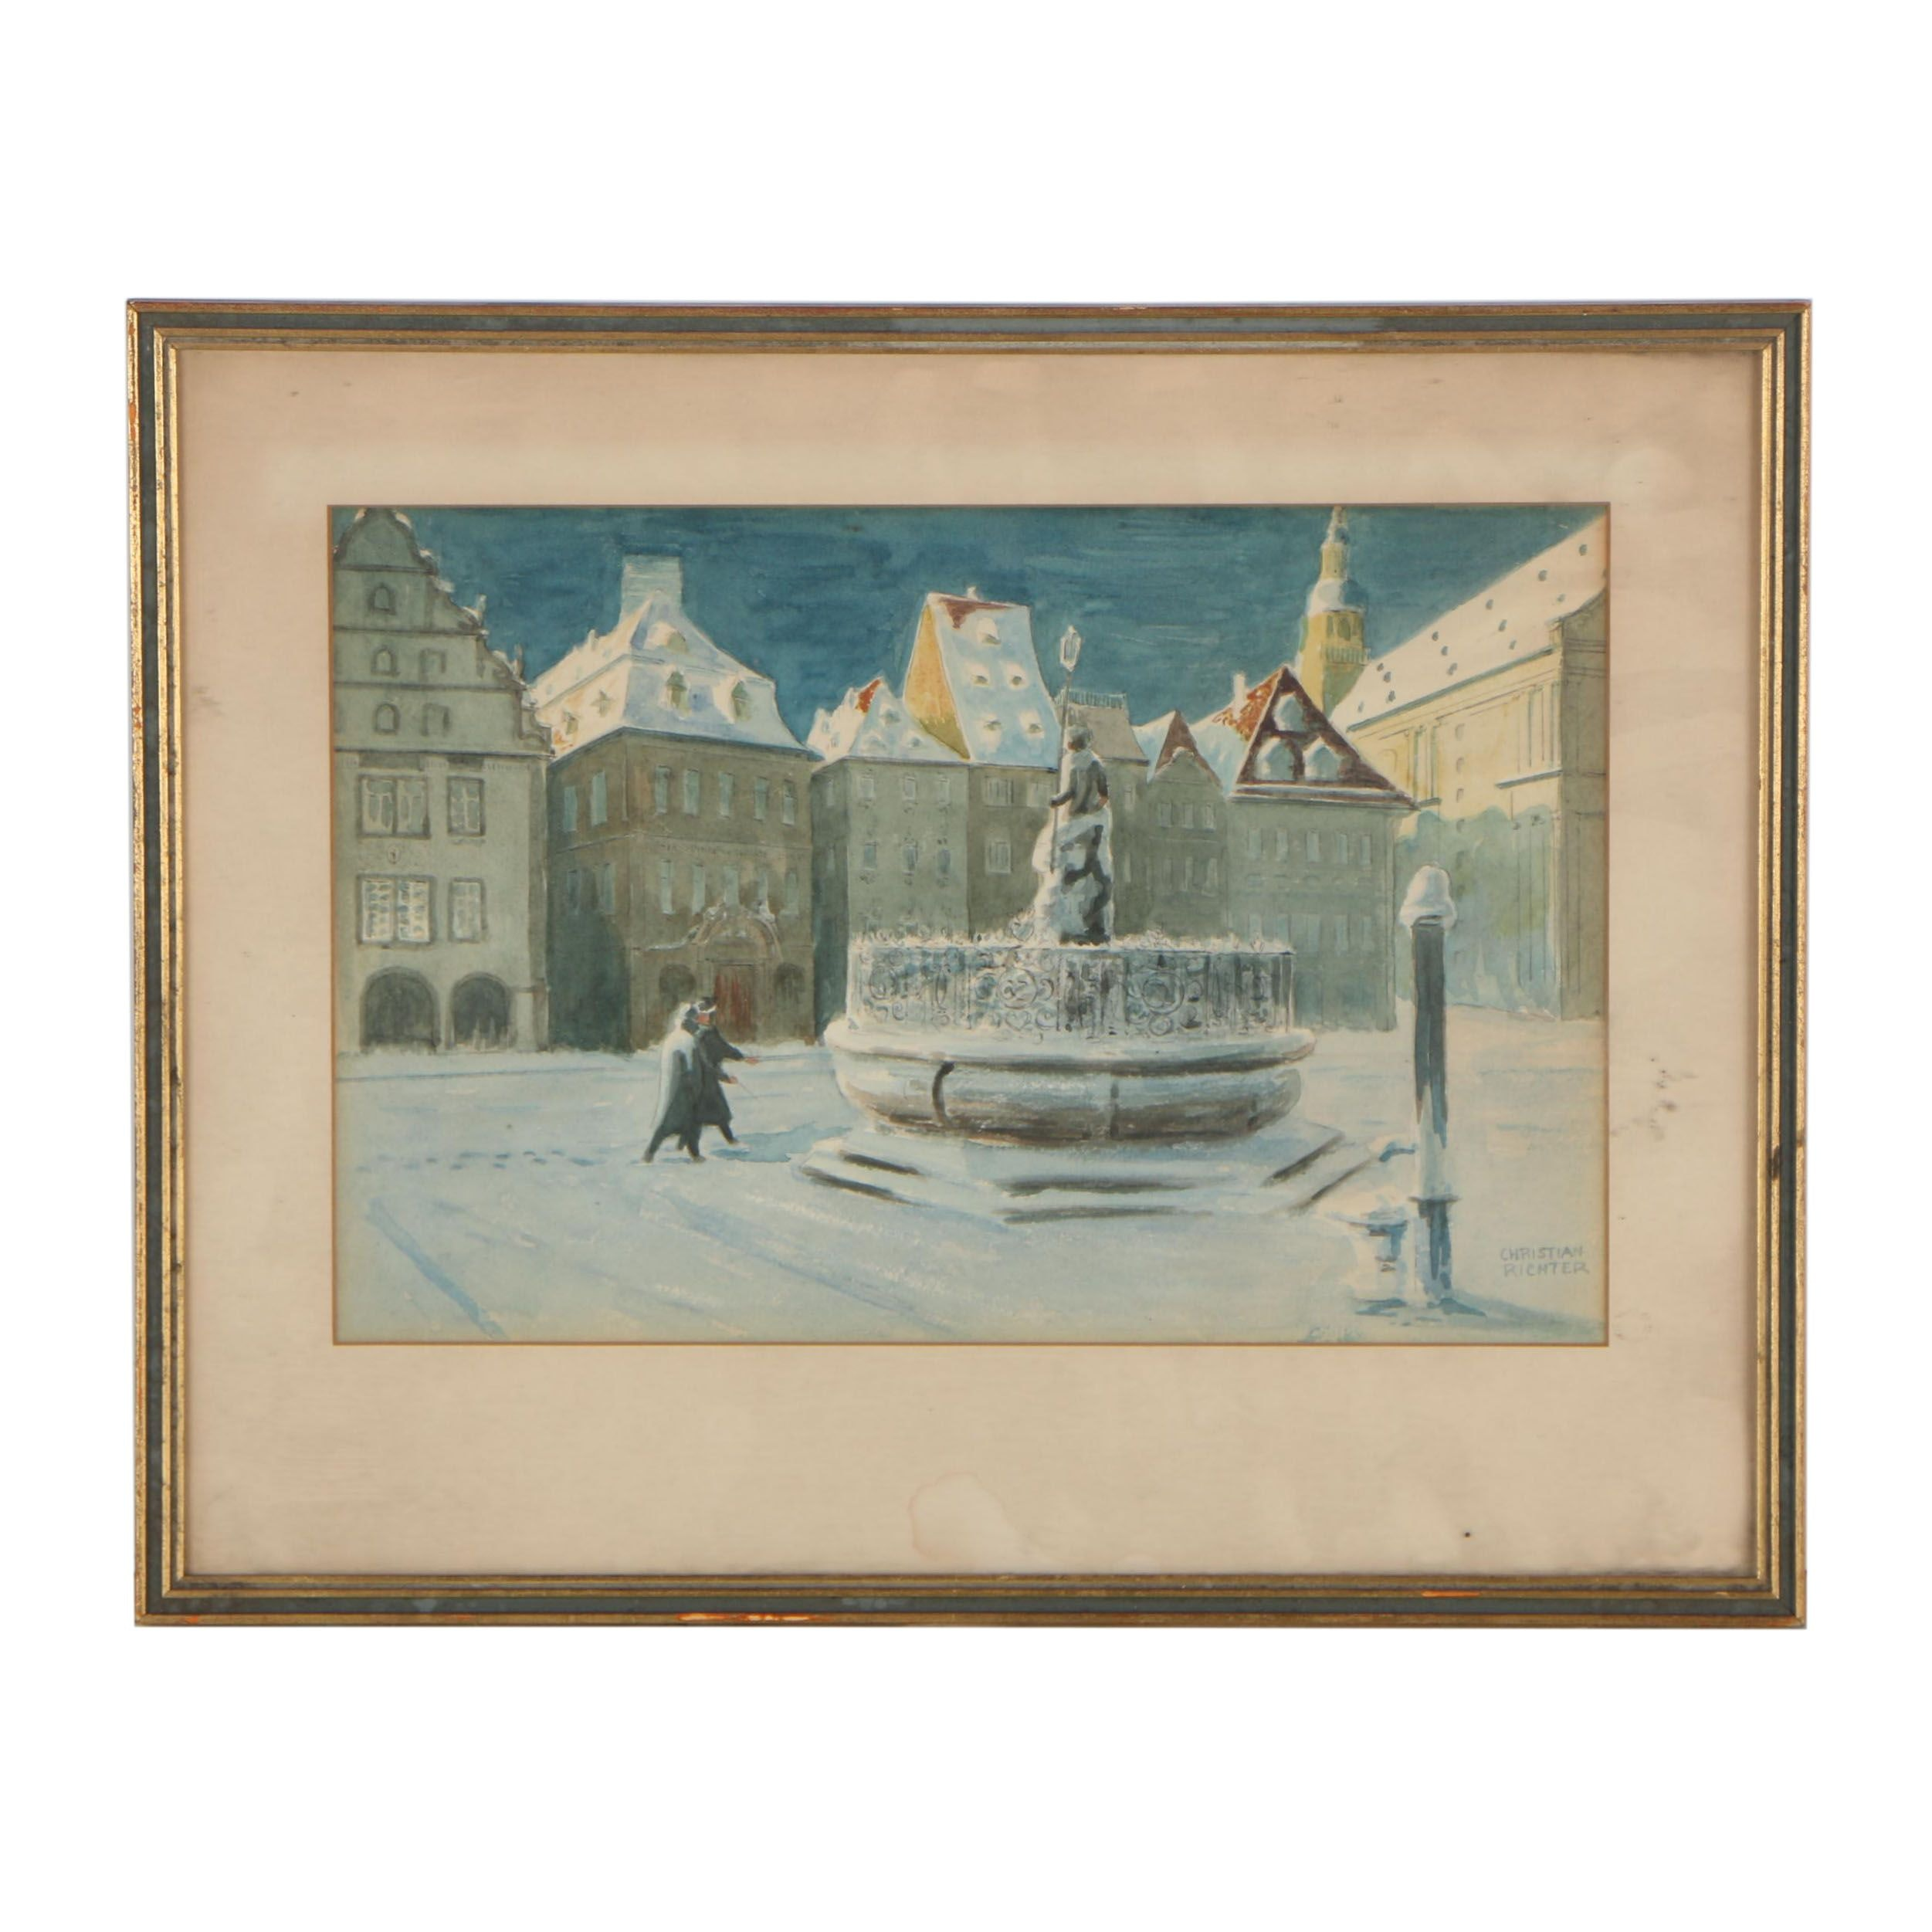 Christiane Richter Watercolor Painting of Nocturnal Square Scene